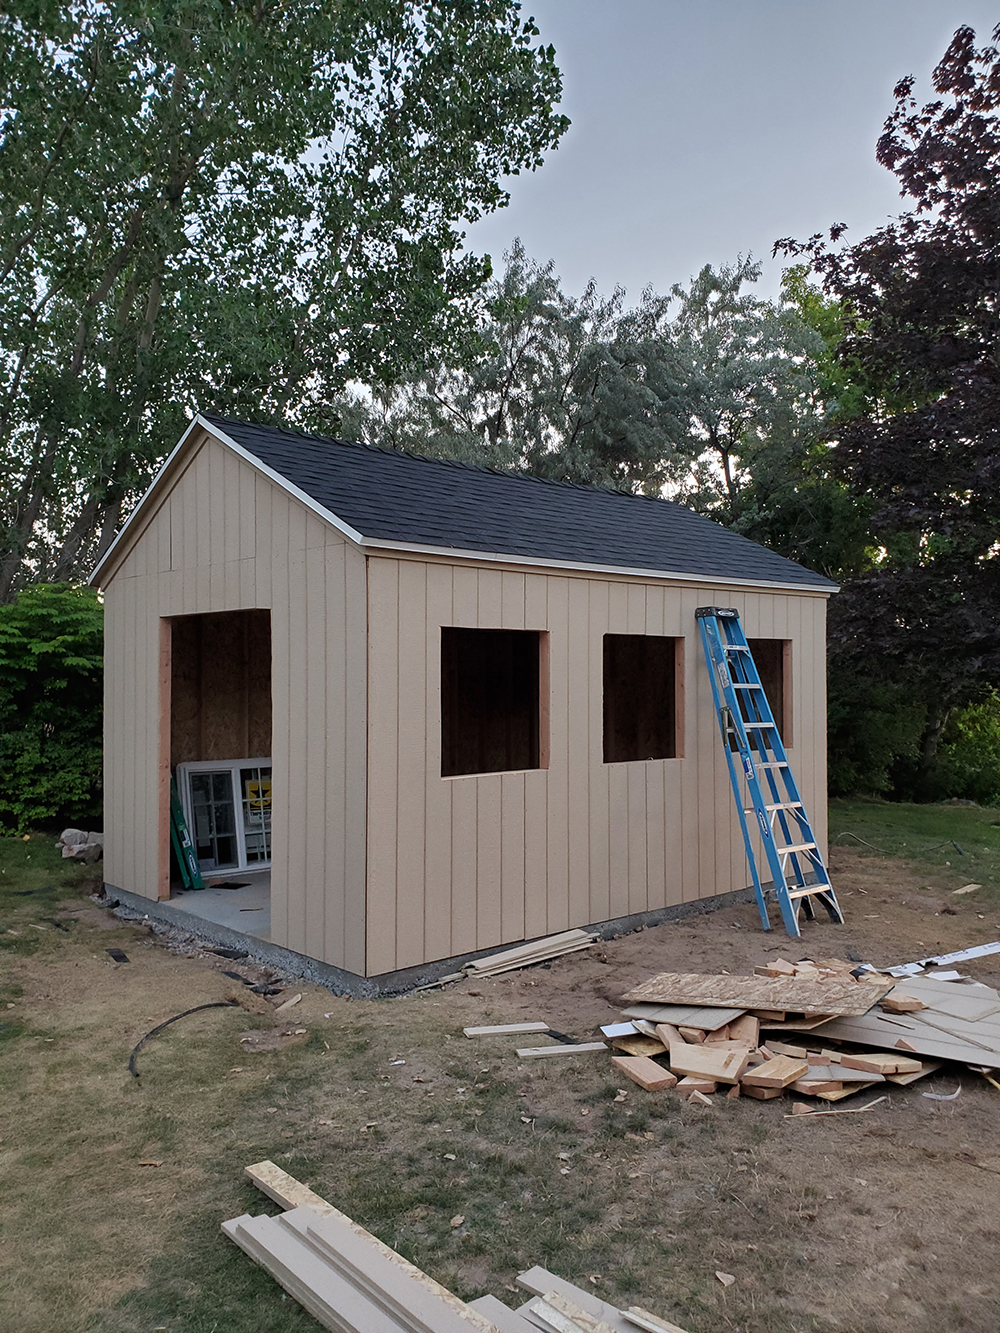 Our Shed Build, Supply List, and Budget - roomfortuesday.com